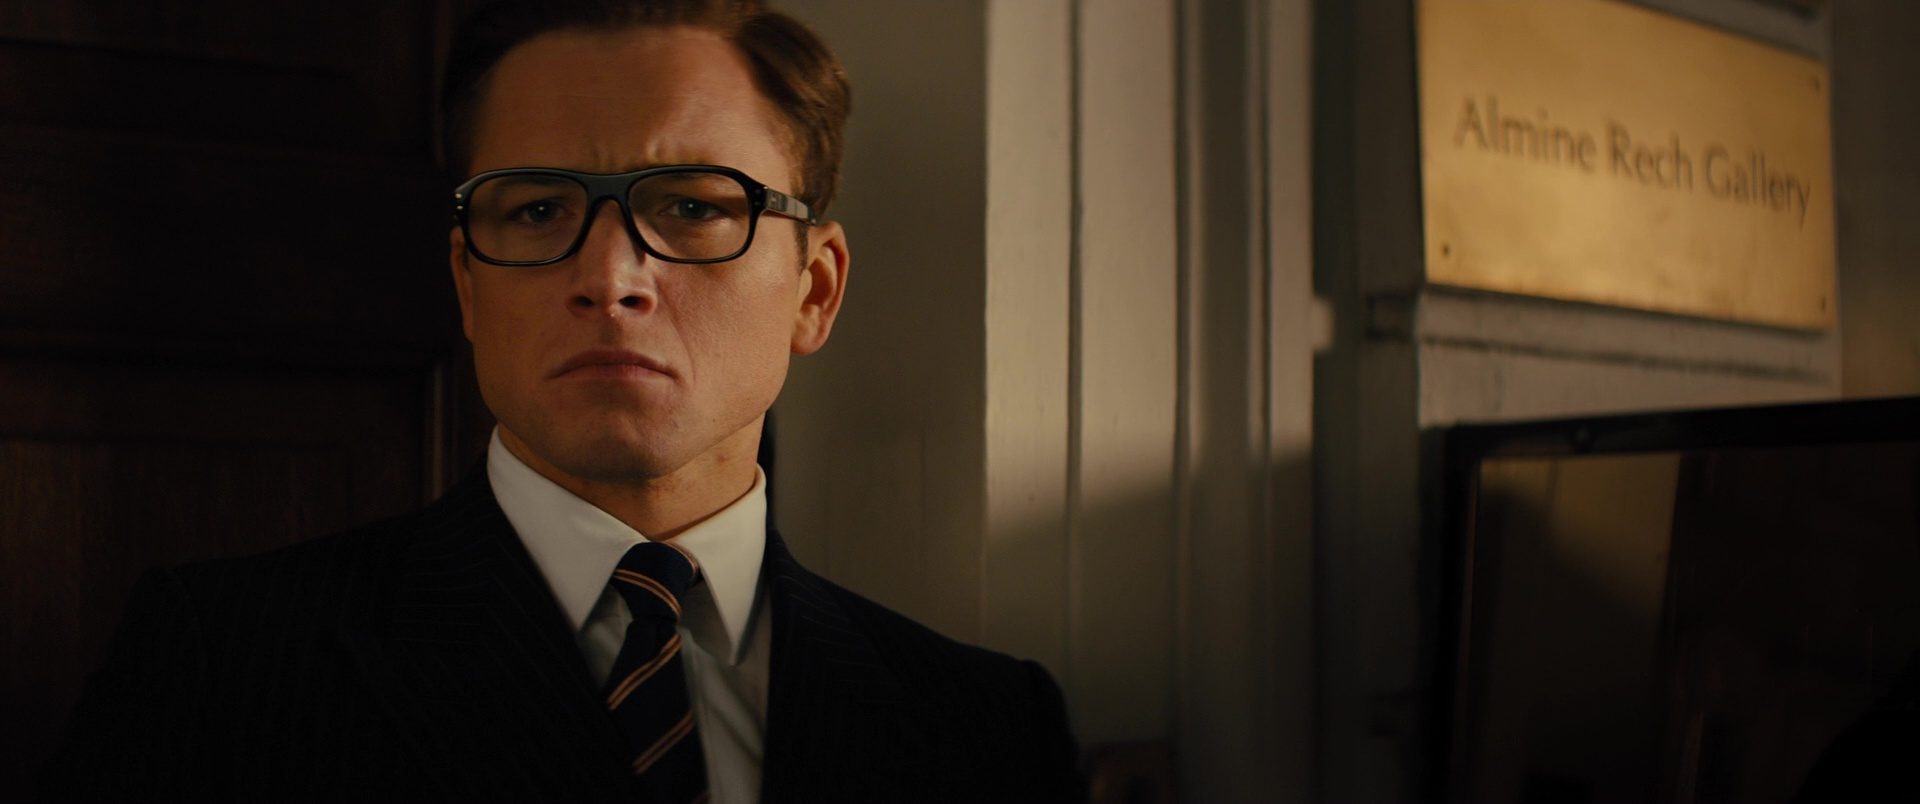 35c9a807b10 Cutler And Gross Tortoiseshell Acetate Square-Frame Optical Glasses Worn by  Taron Egerton in Kingsman 2  The Golden Circle (2017)